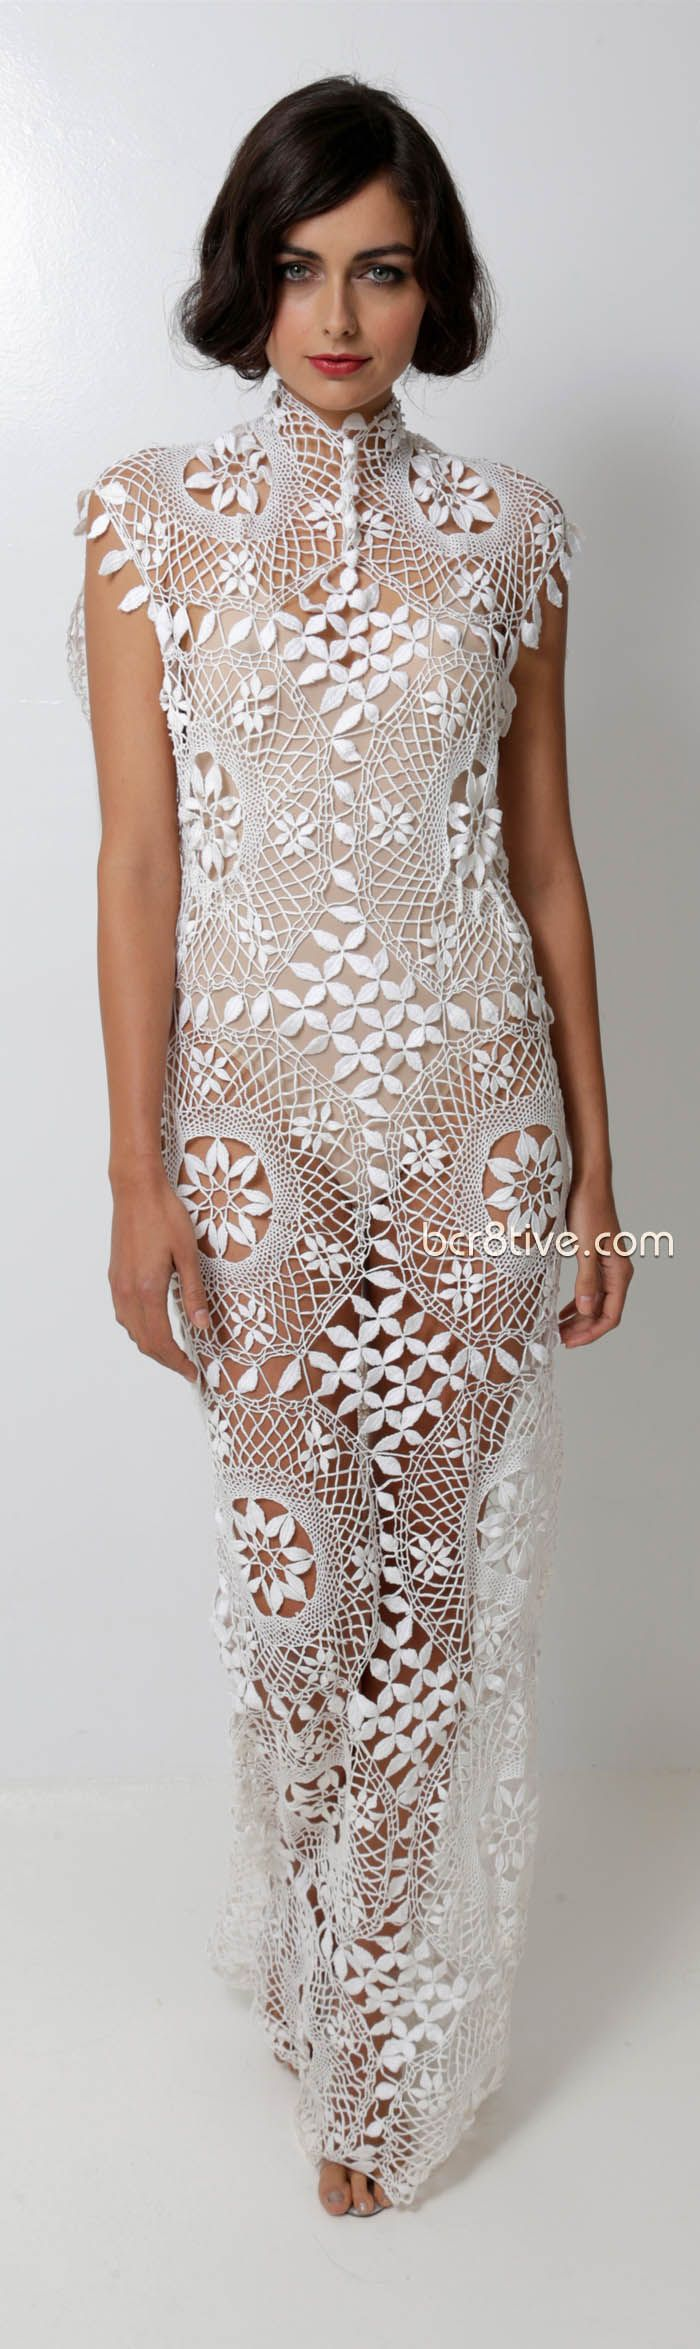 sexy Lacy Macrame see-through gown from Norma Kamali Spring Summer 2013 Ready to Wear Collection